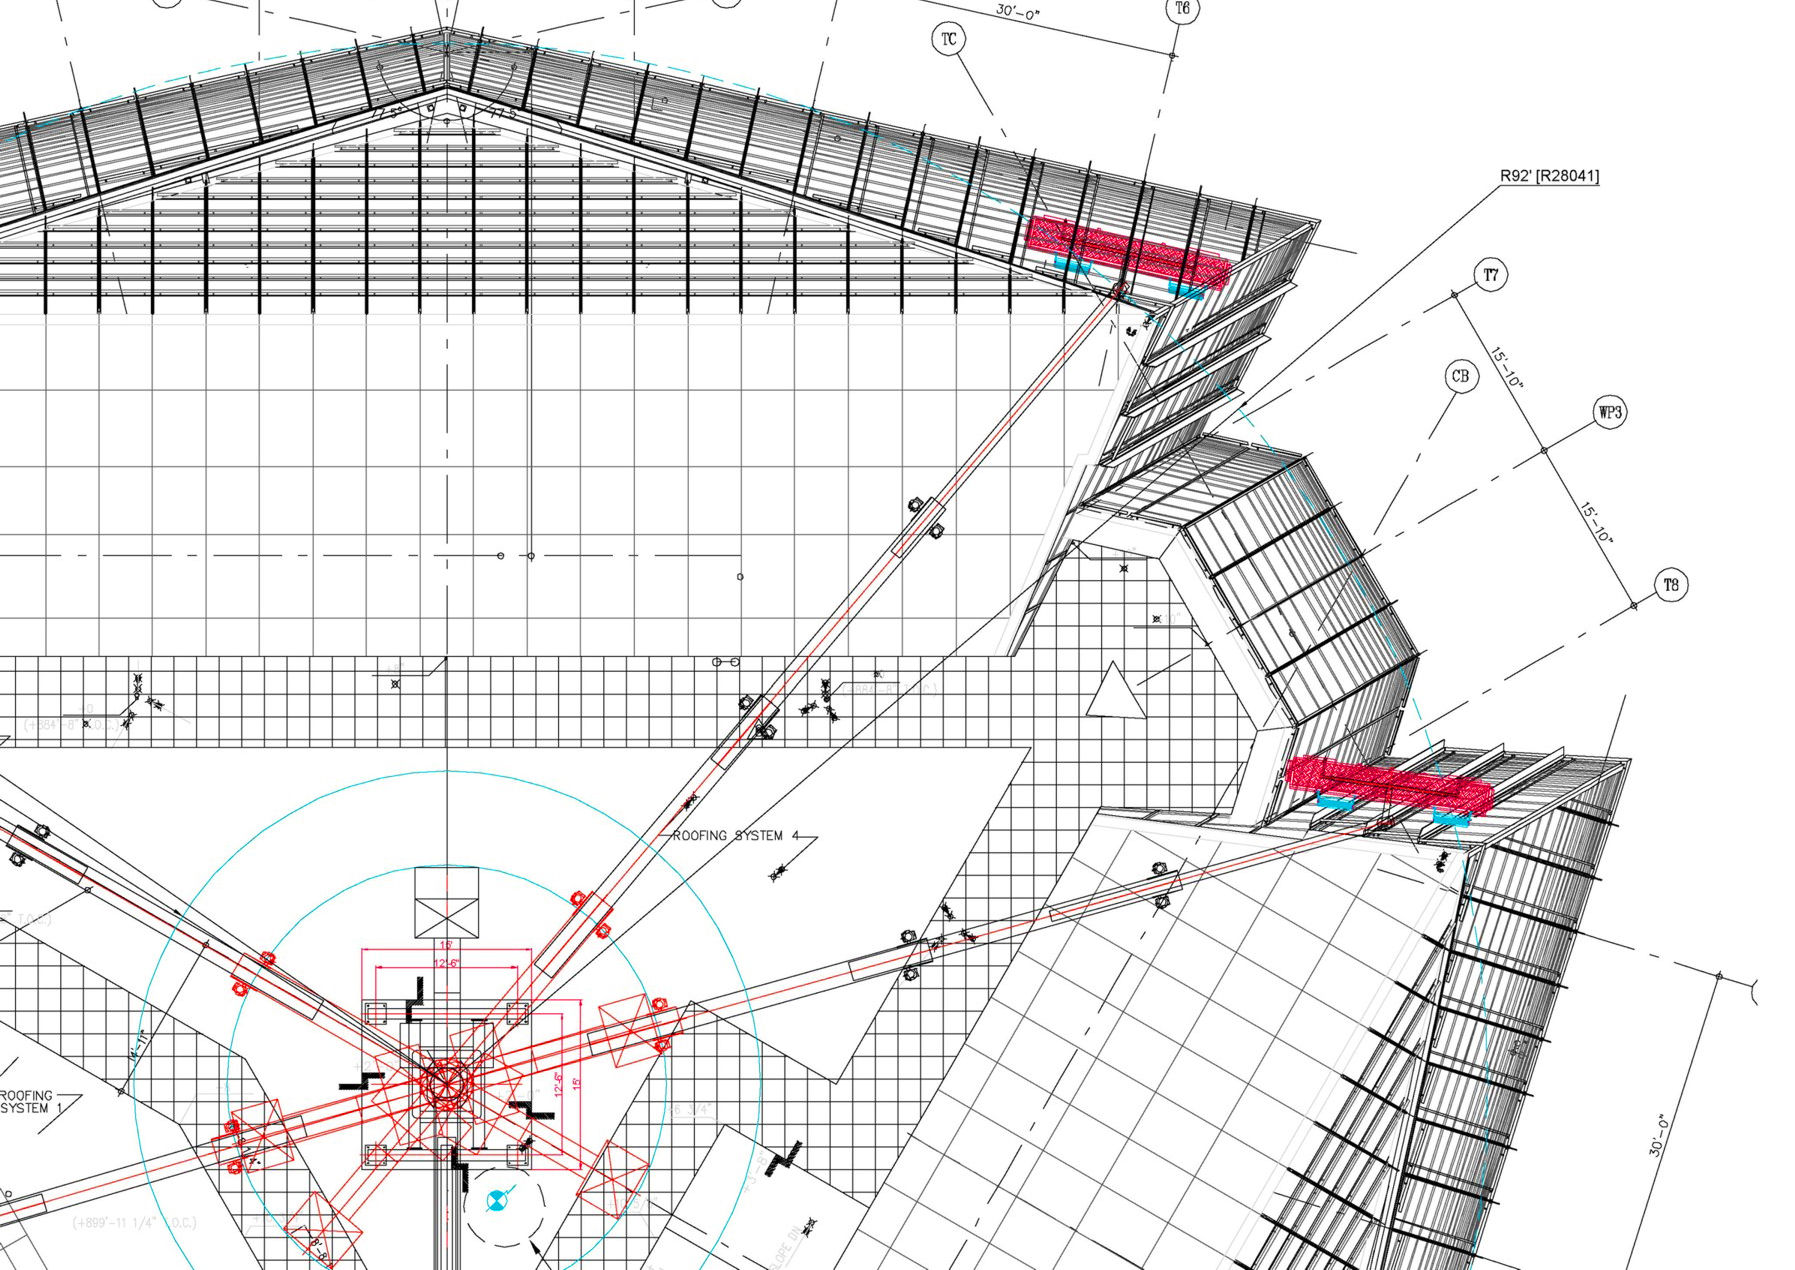 Partial Roof Plan Roof Car and Work Positions-300 - Reduced.jpg